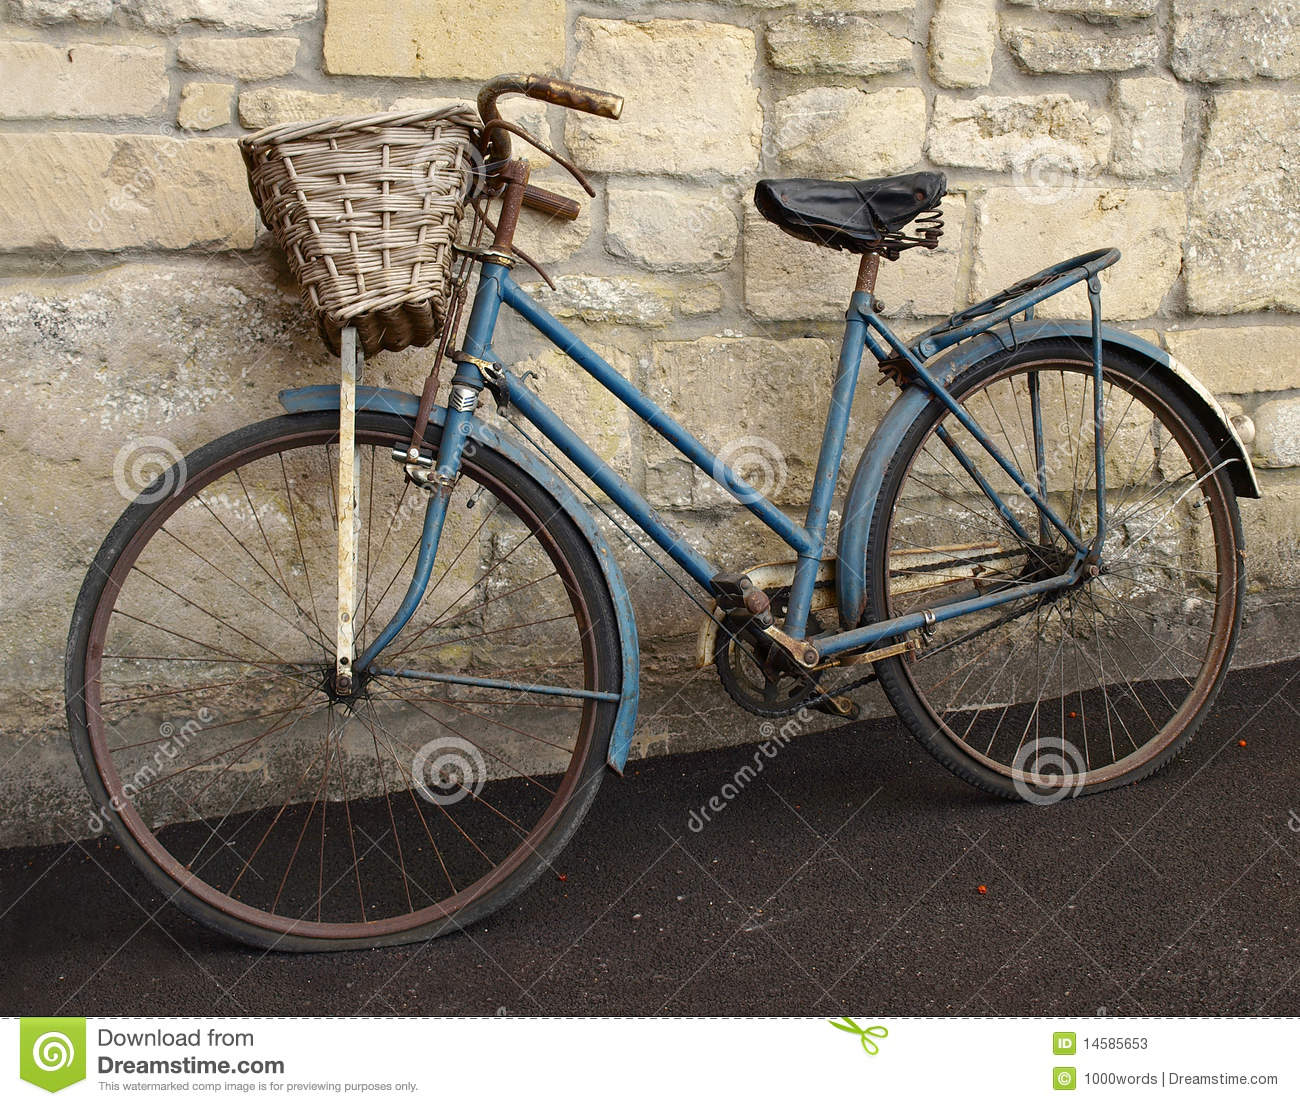 Old Bicycle Stock Photos - Image: 14585653